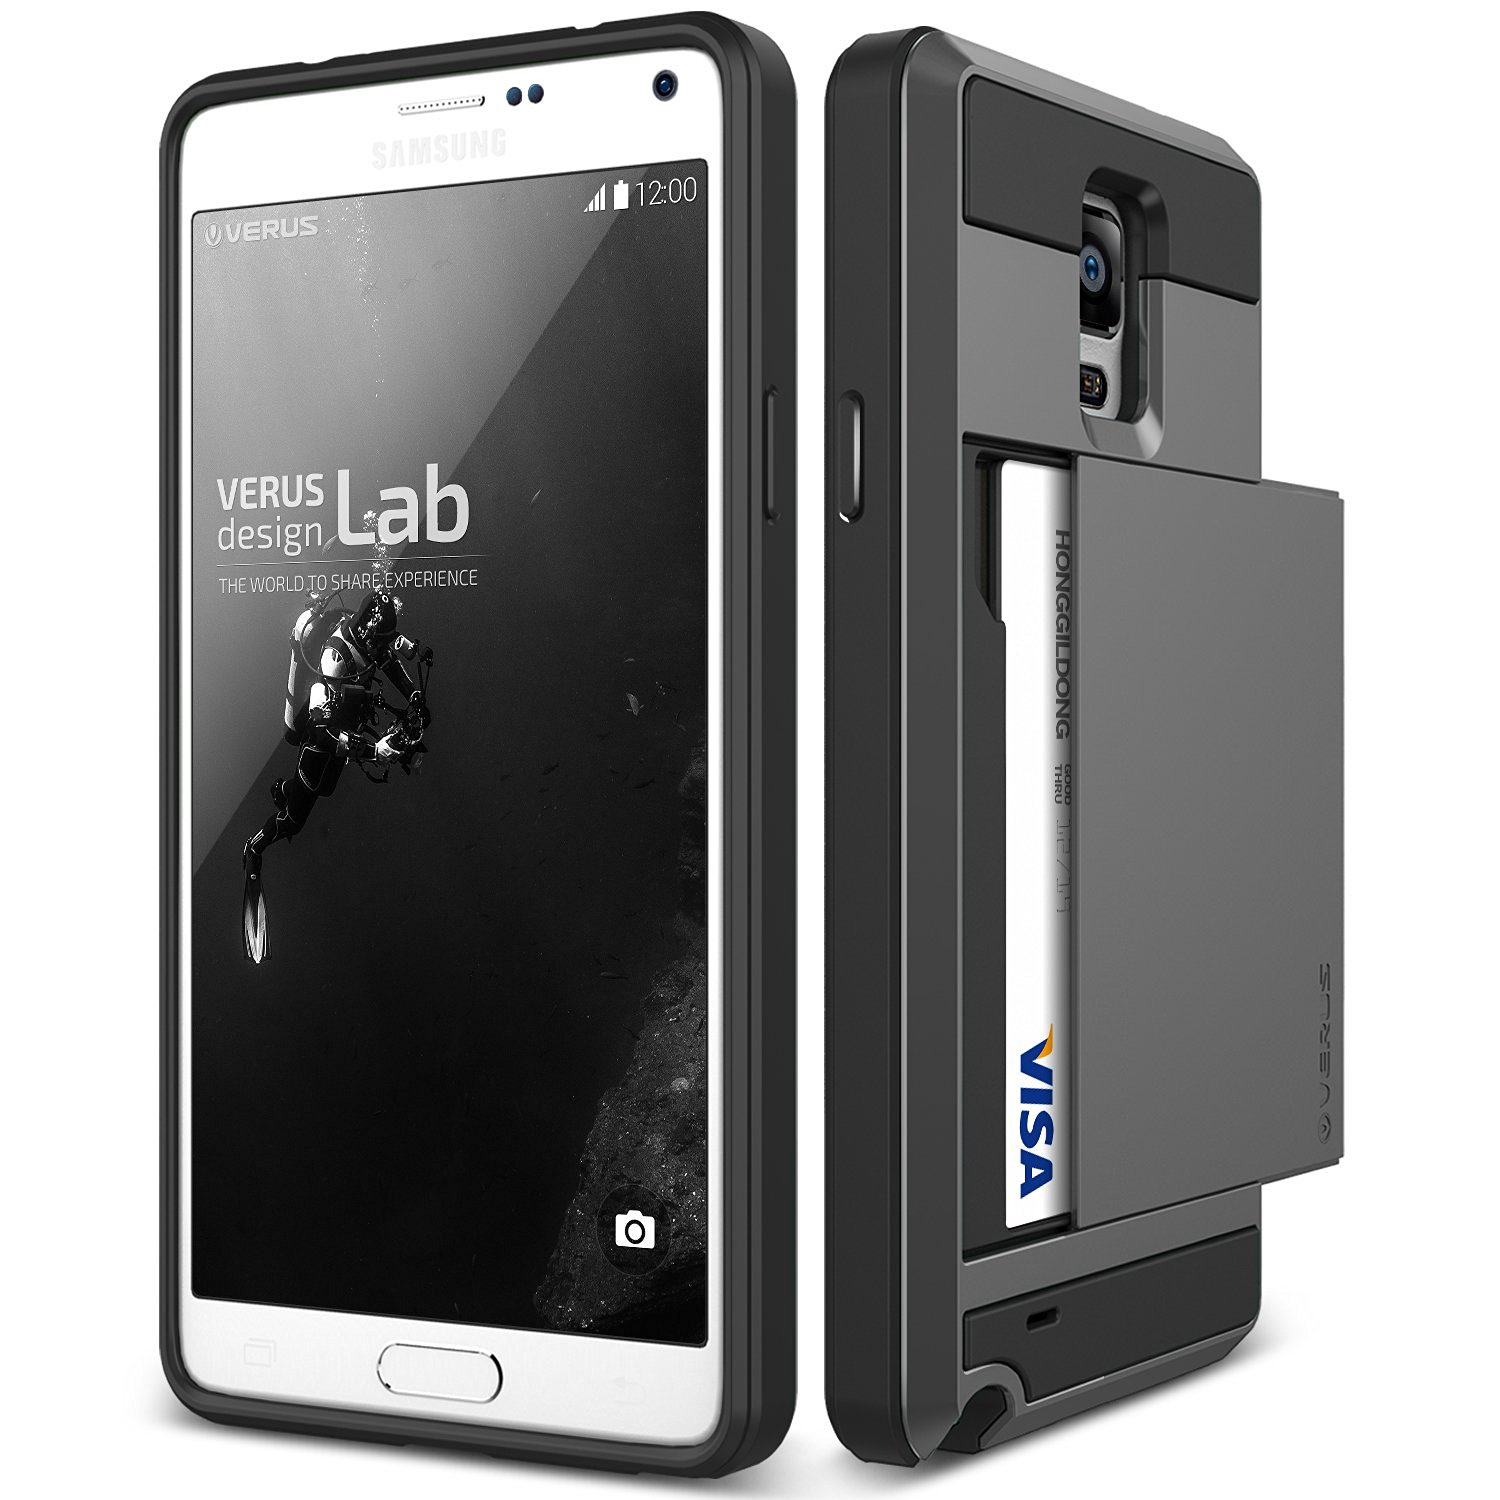 c3446da3709 Best wallet cases for Galaxy Note 4 (Updated Oct. 2016) - TheNewWallet